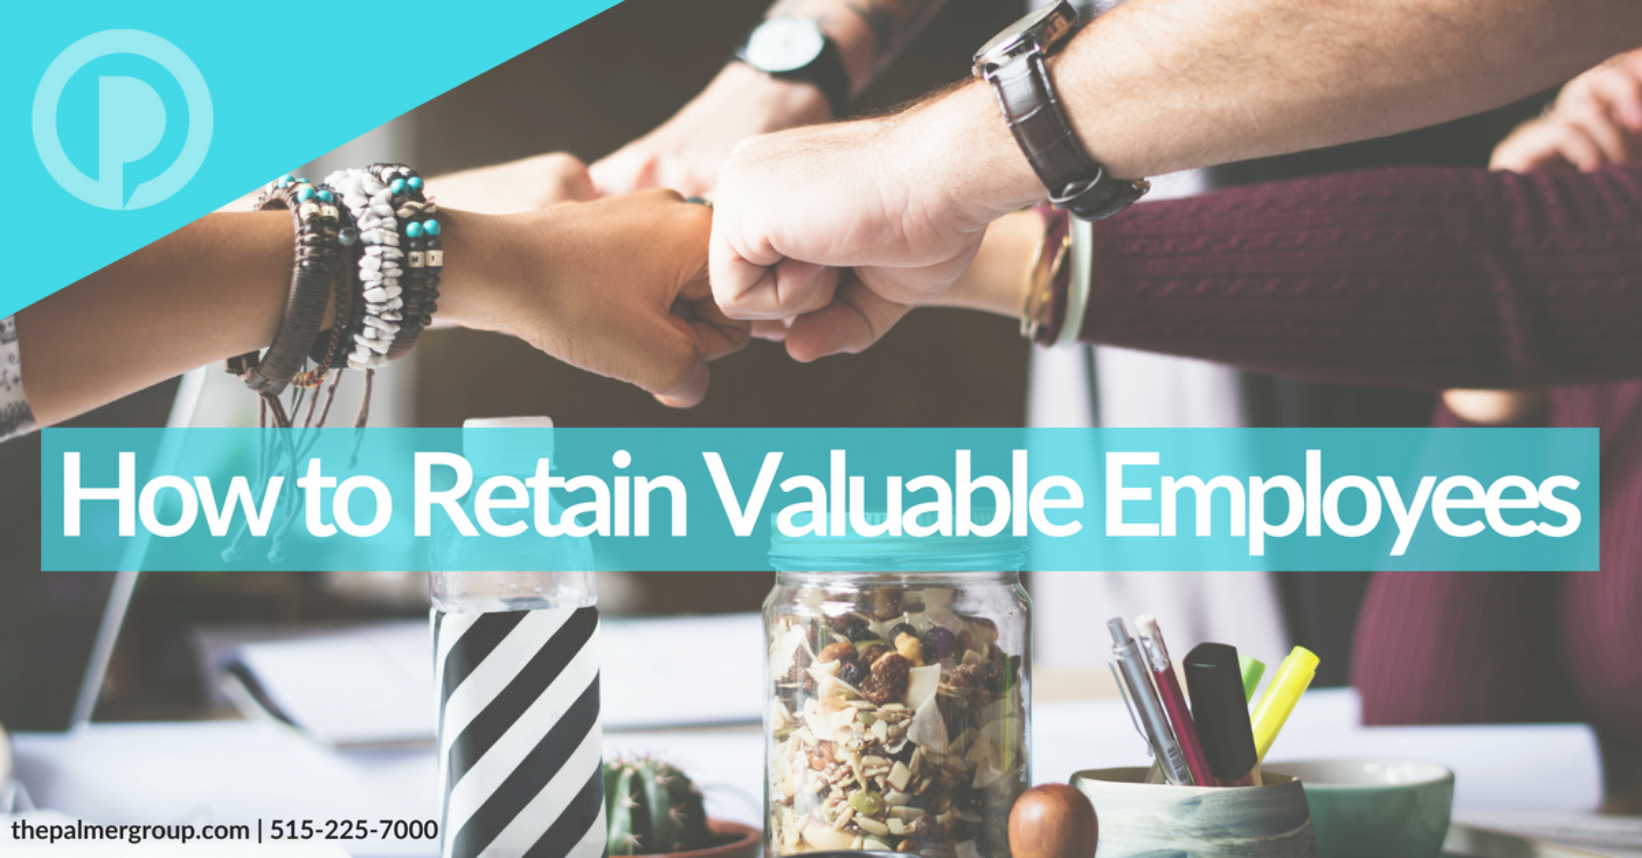 How to Retain Valuable Employees